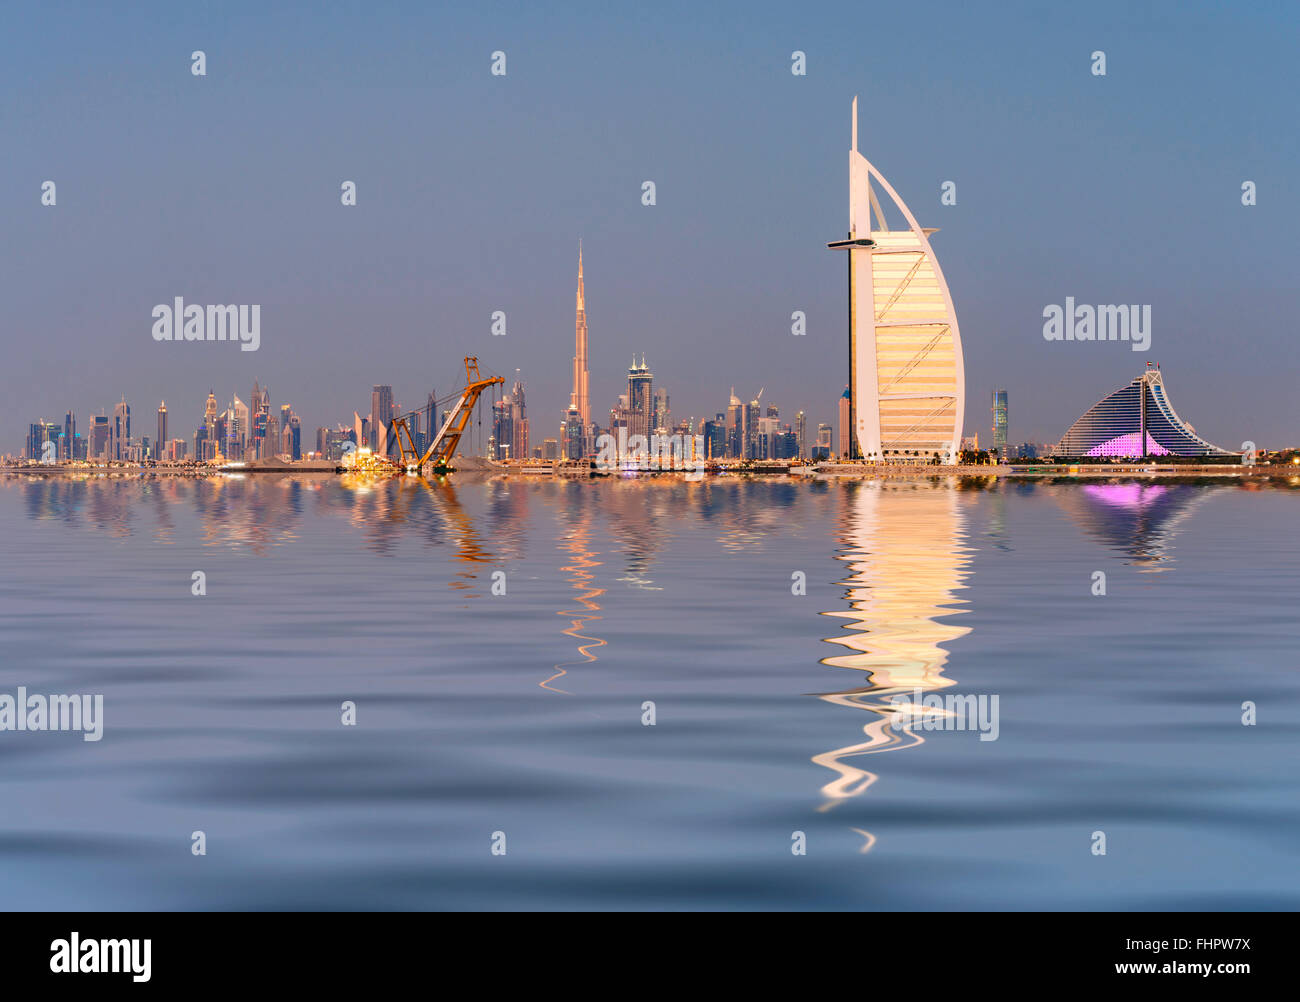 Skyline of Dubai waterfront with Burj al Arab Hotel in United Arab Emirates - Stock Image